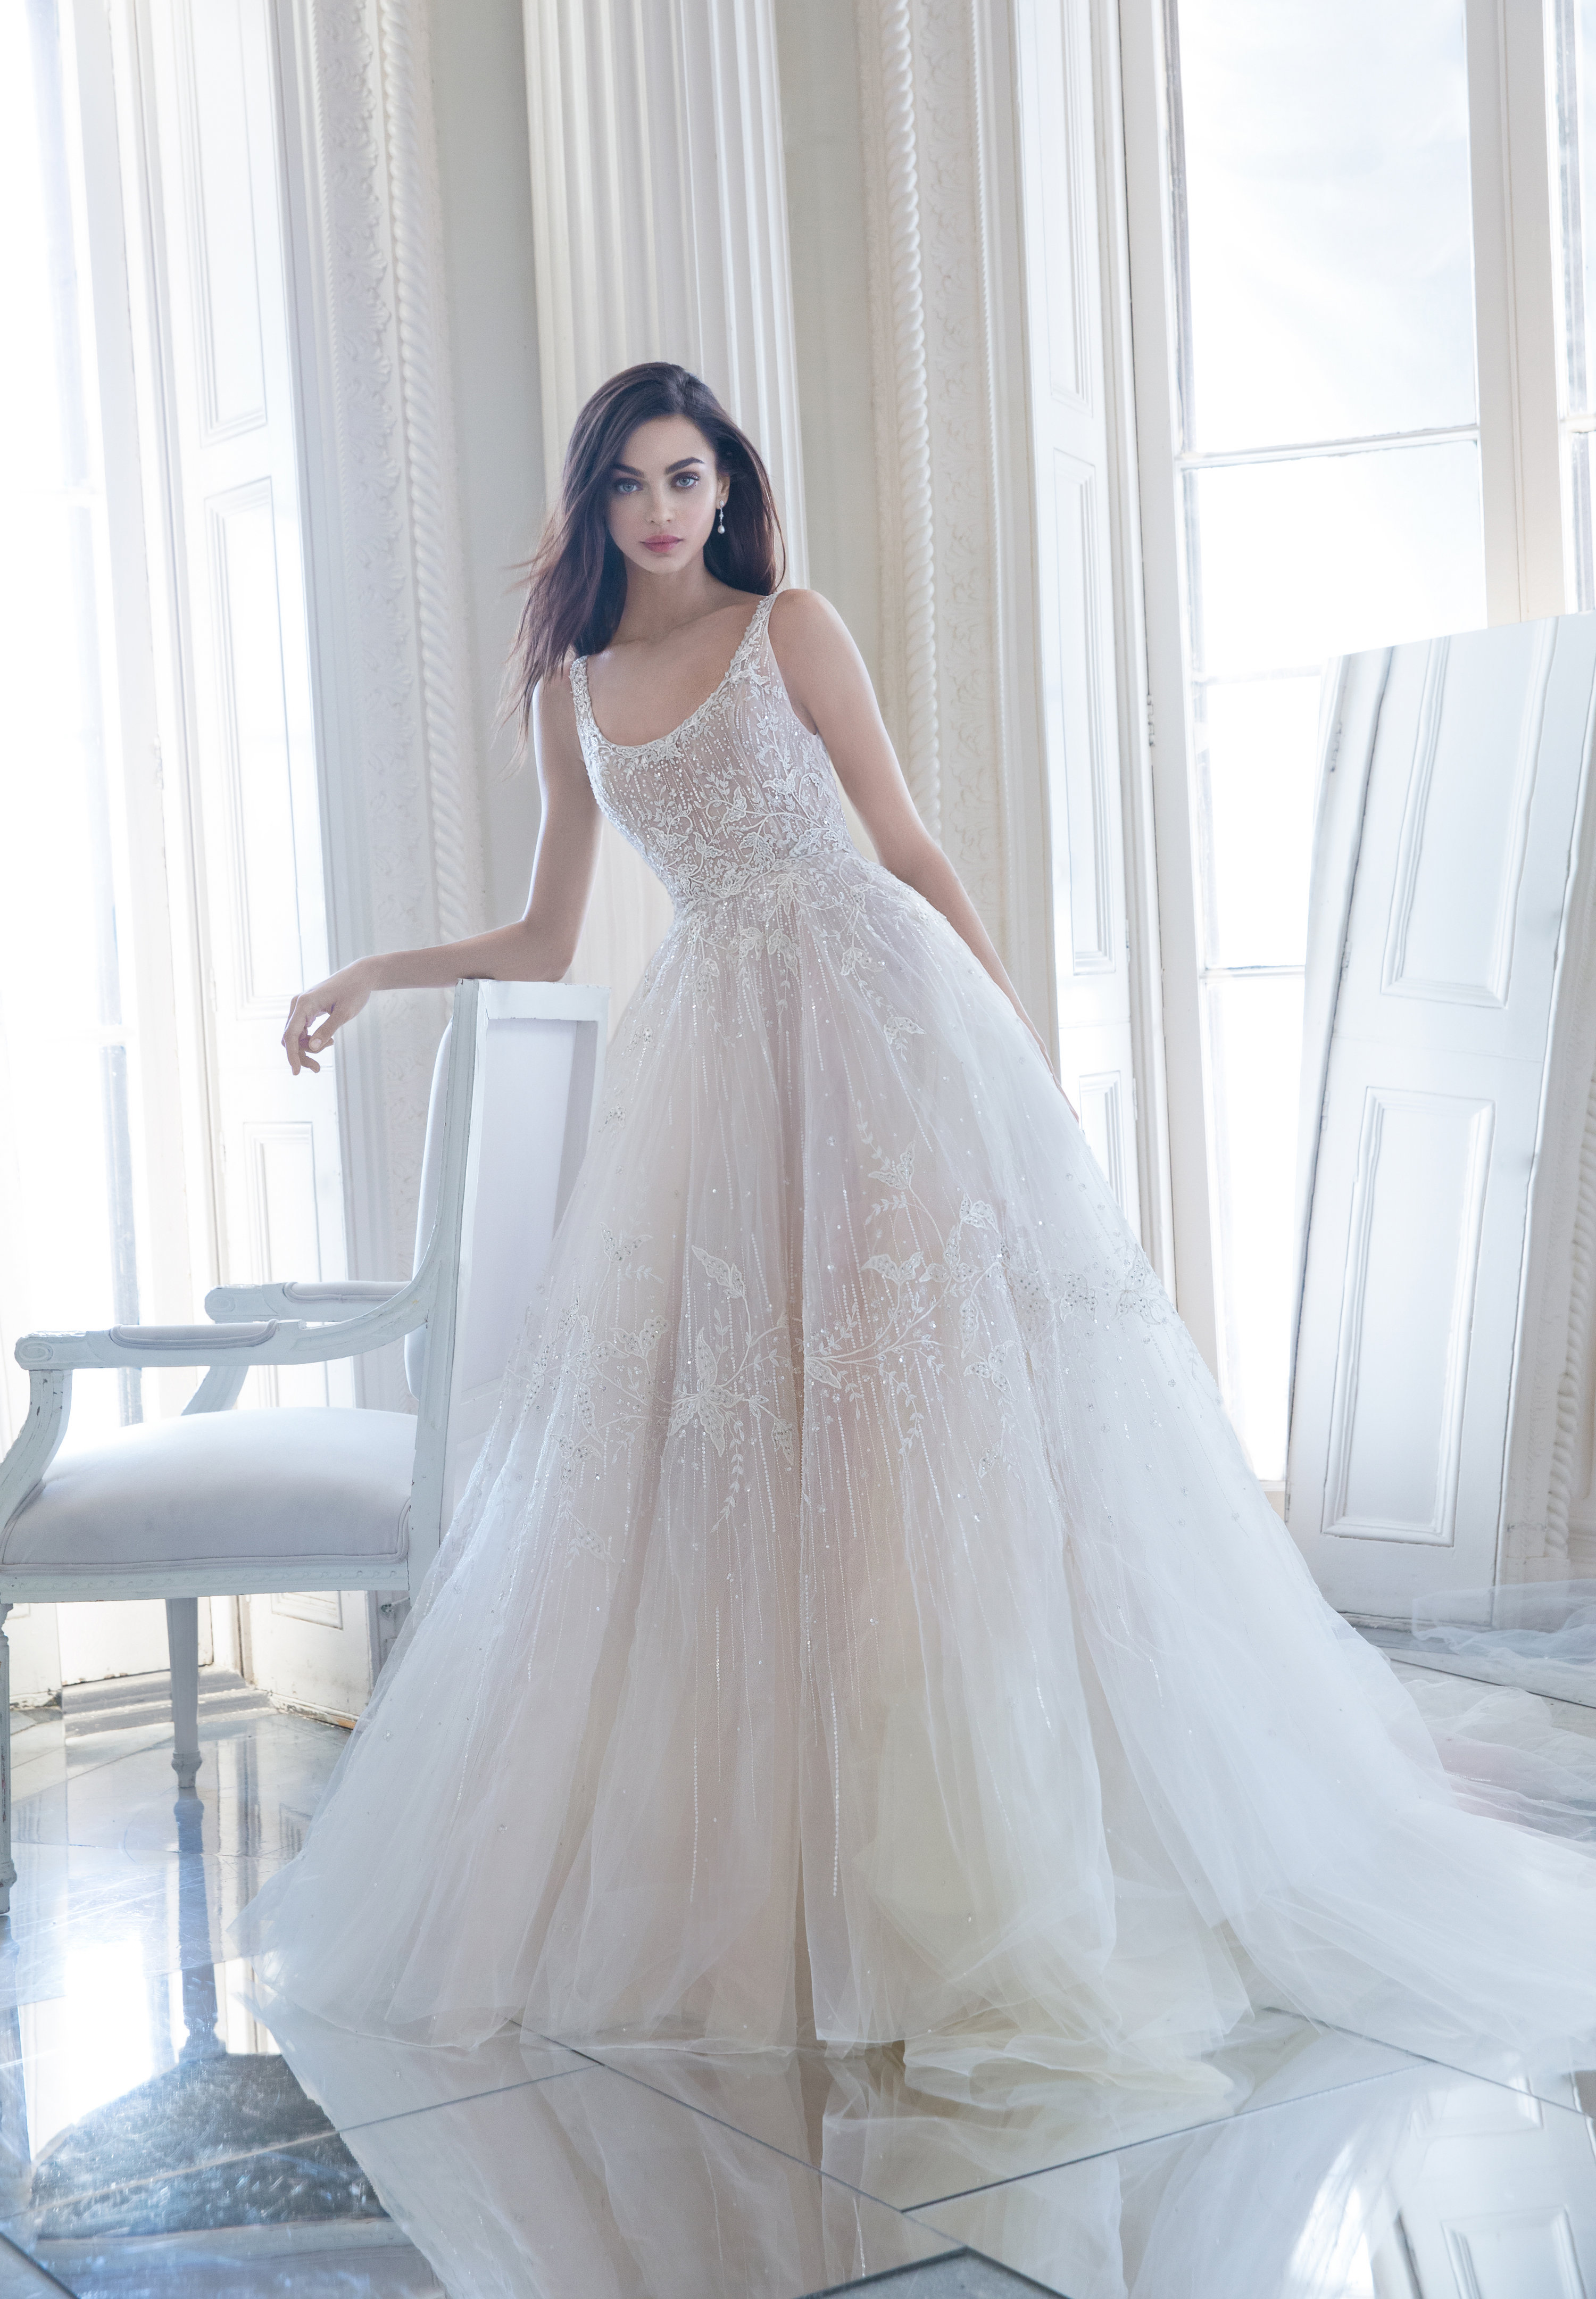 Bridal Gowns And Wedding Dresses By Jlm Couture Style 3804